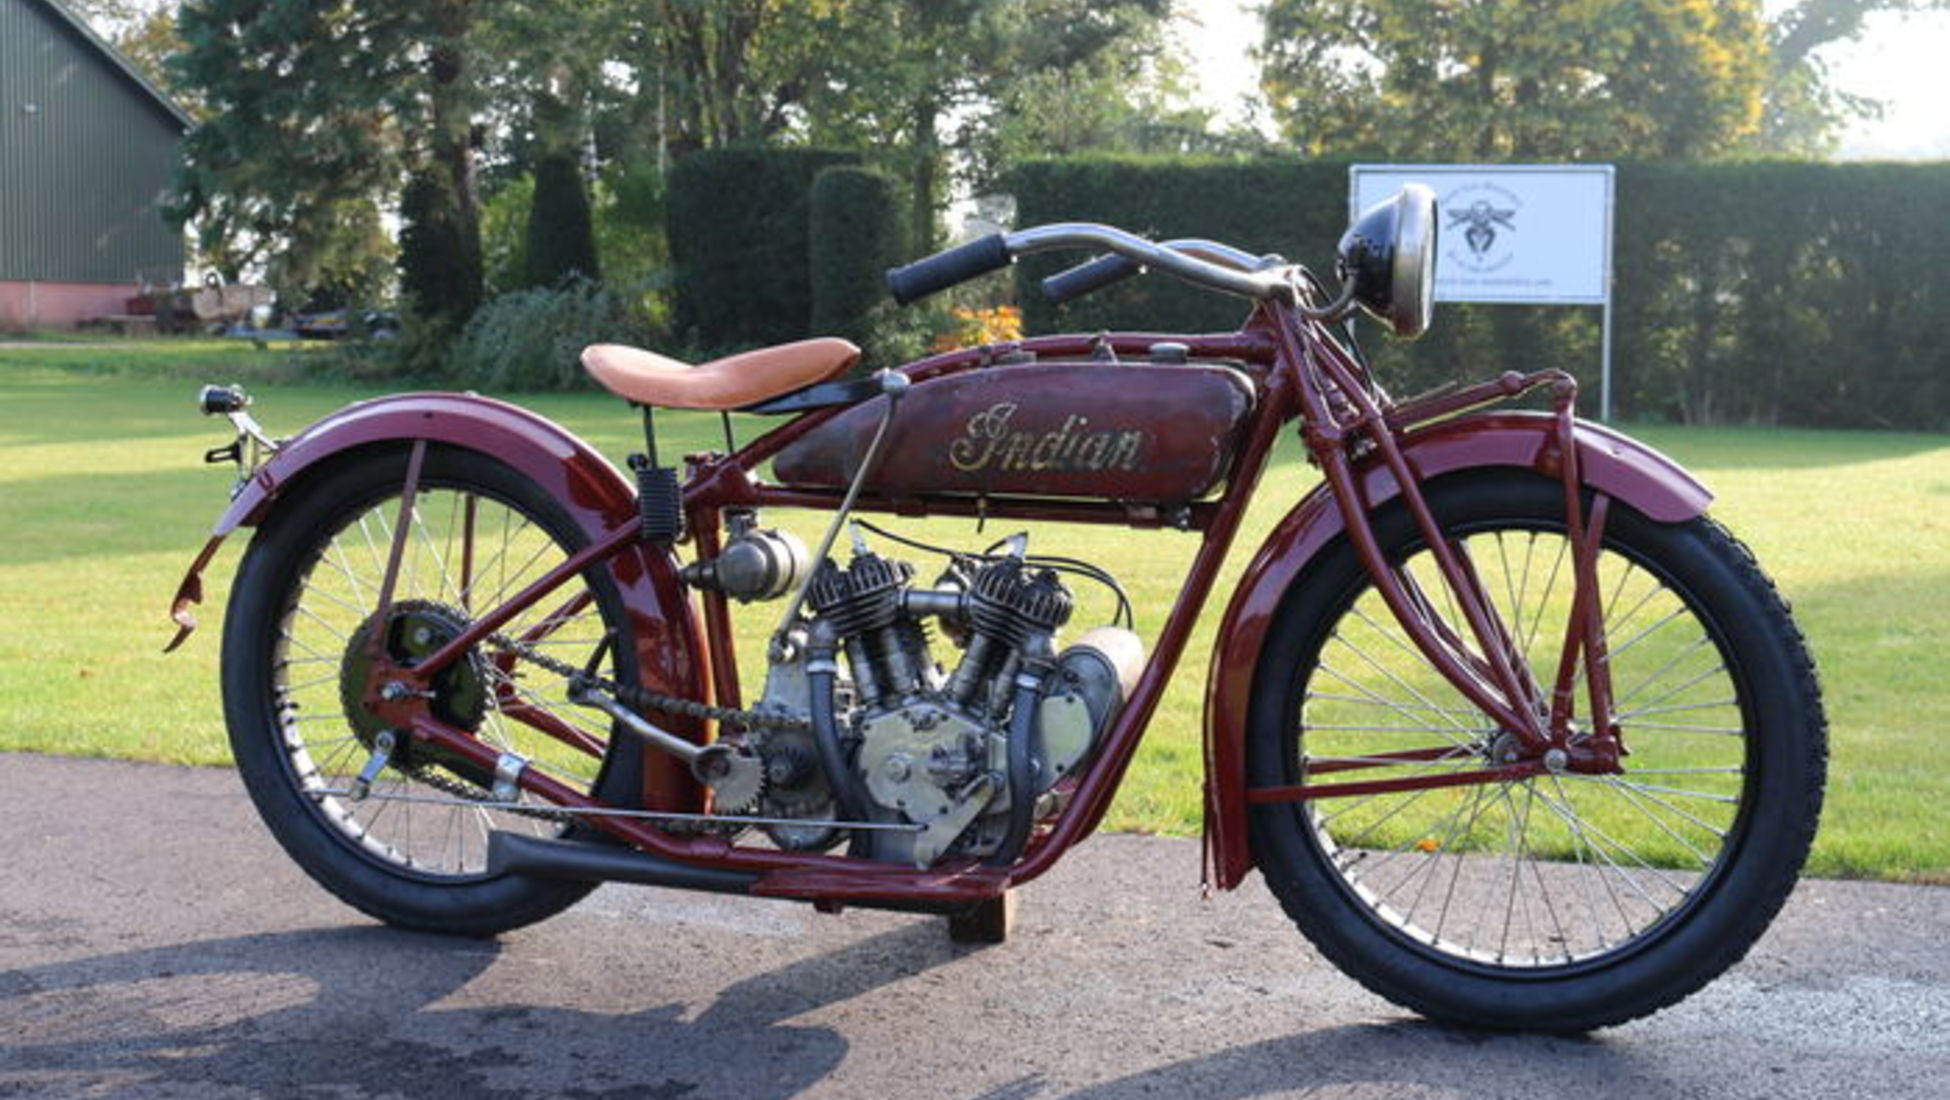 indian motorcycle essay College papers college papers (harley davidson: the american motorcycle essay) eventually harley found a match in racing when put against the indian motorcycles.